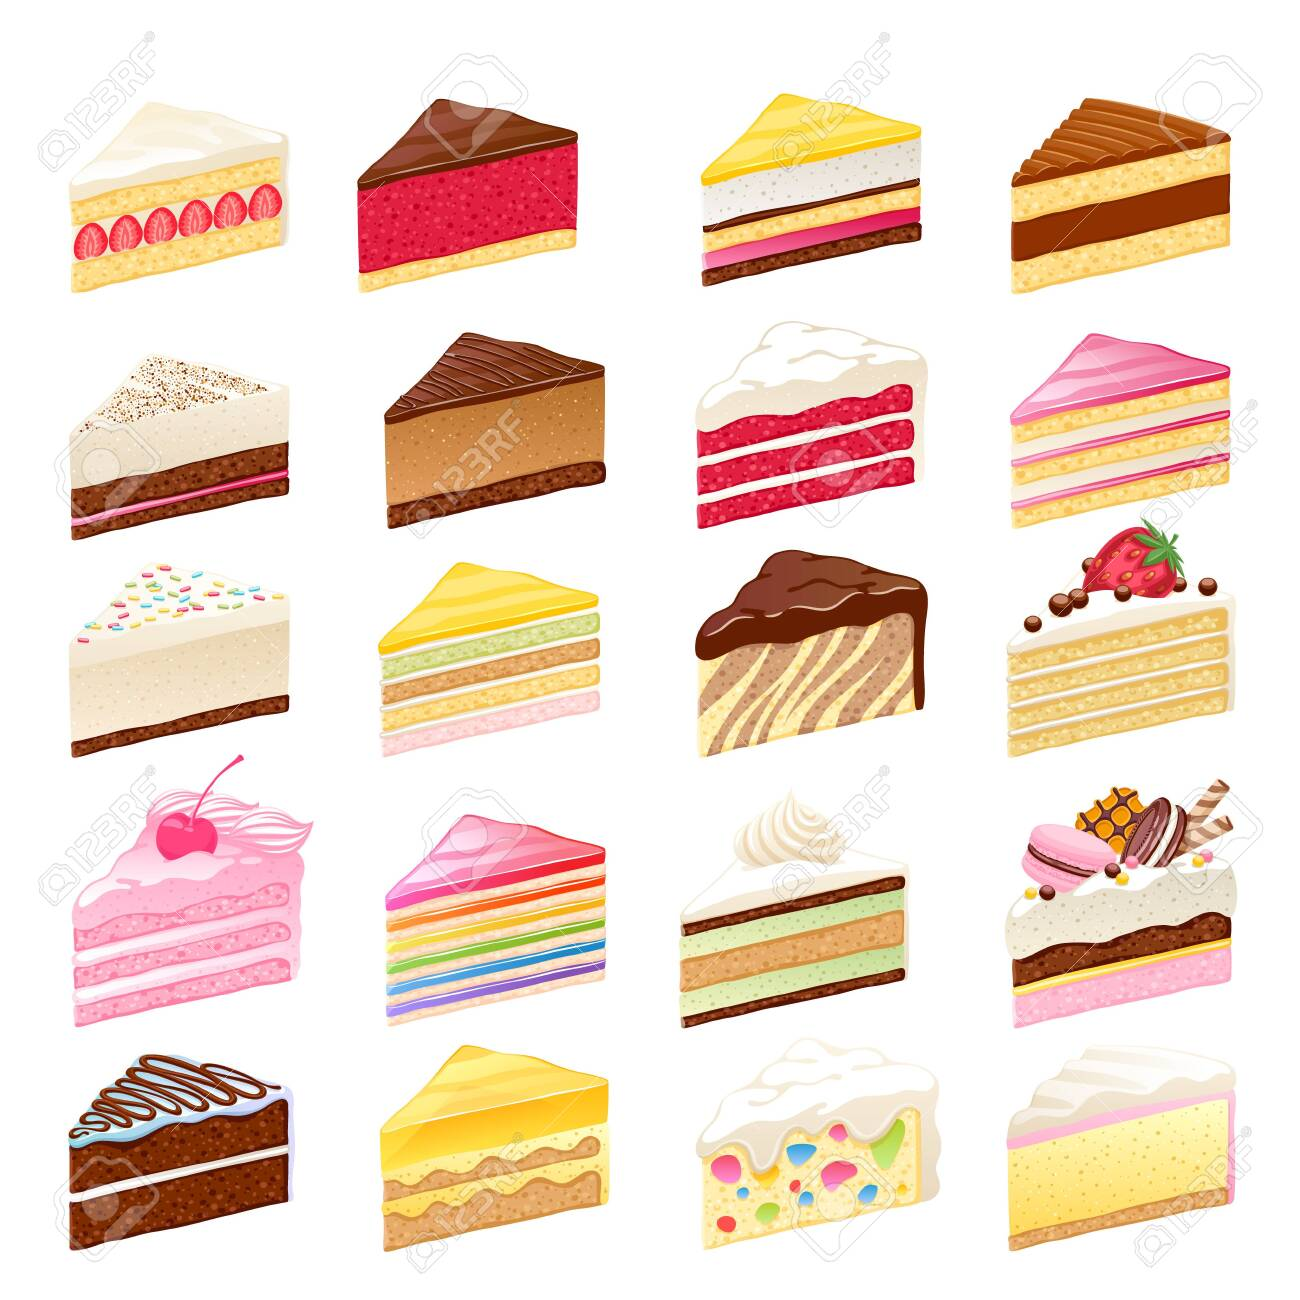 Colorful sweet cakes slices set vector illustration. - 149807864